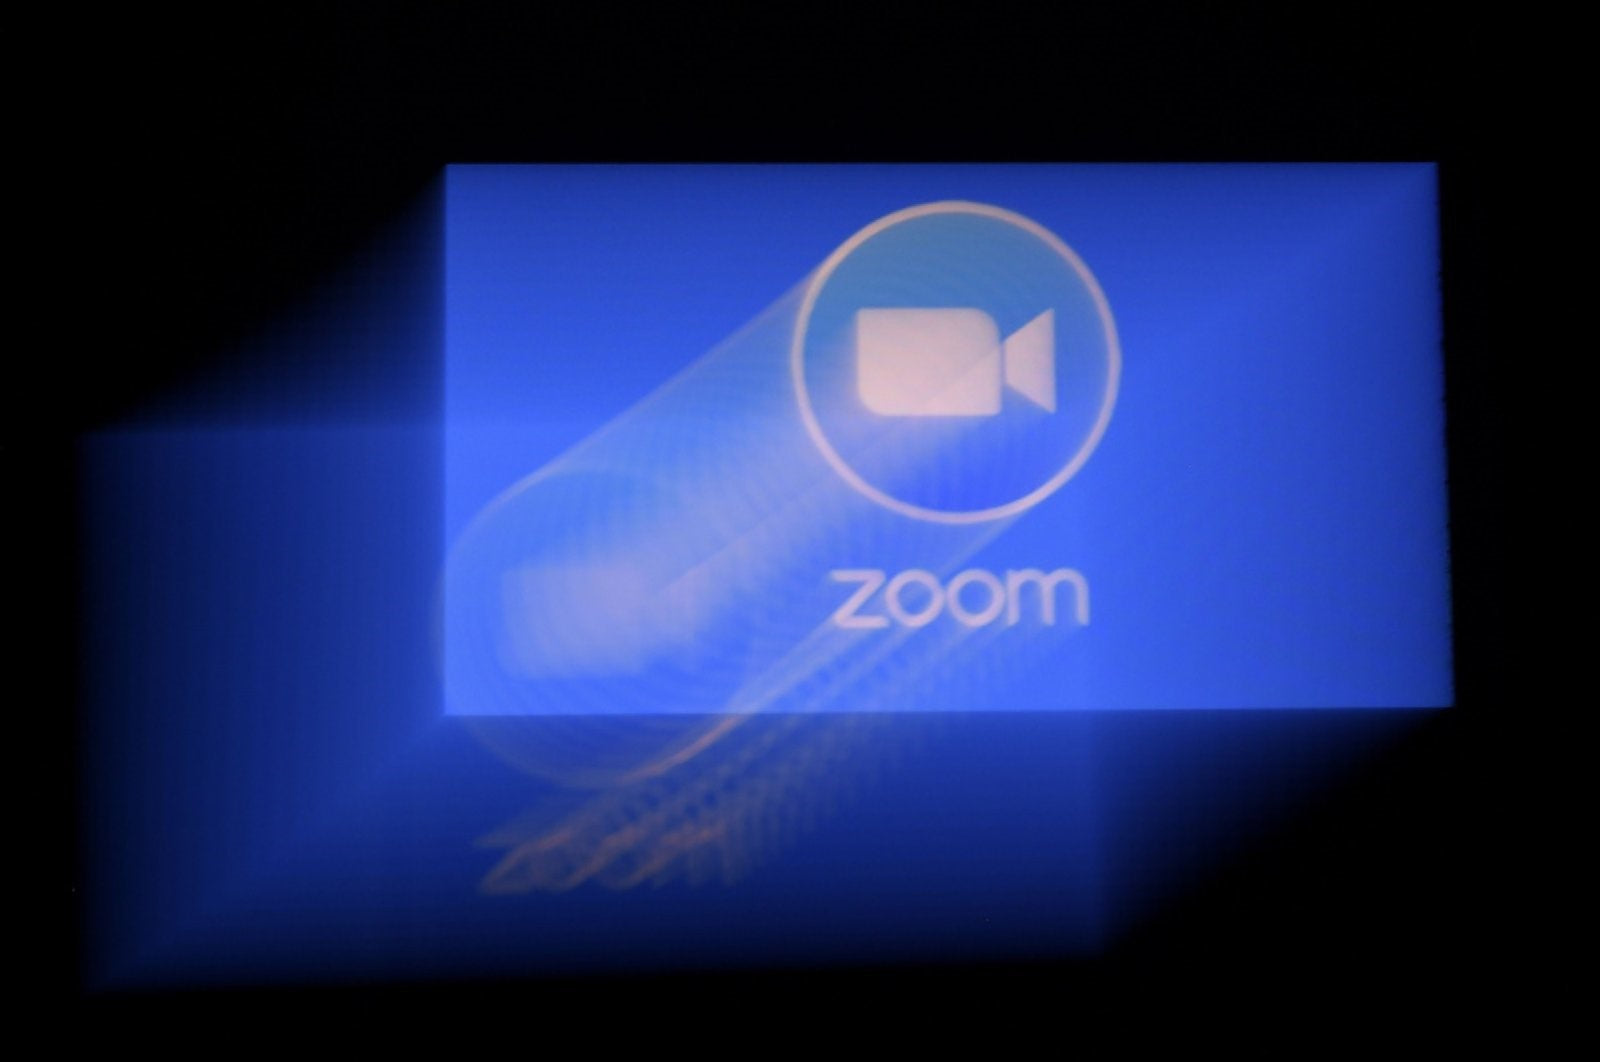 ZOOM with Home Projector